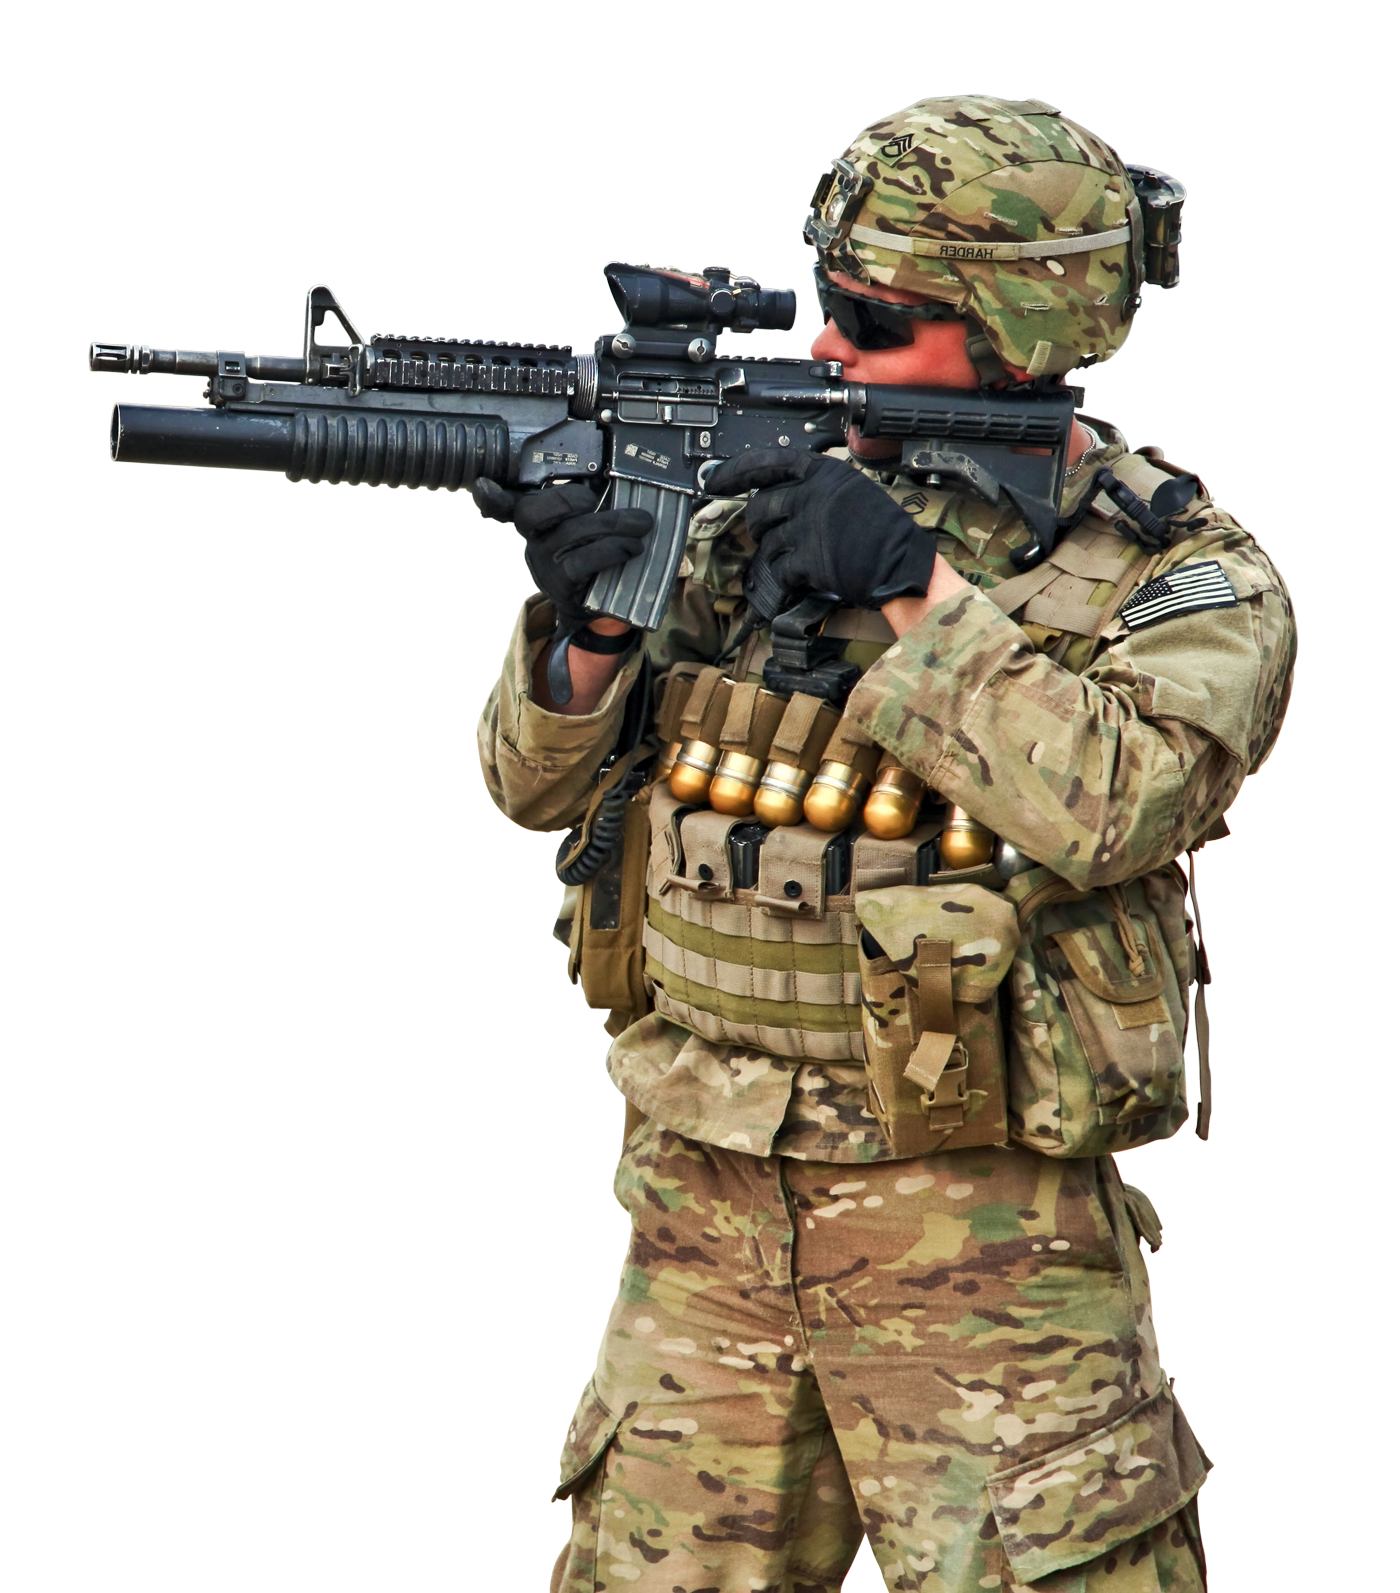 Army png. Military man transparent image